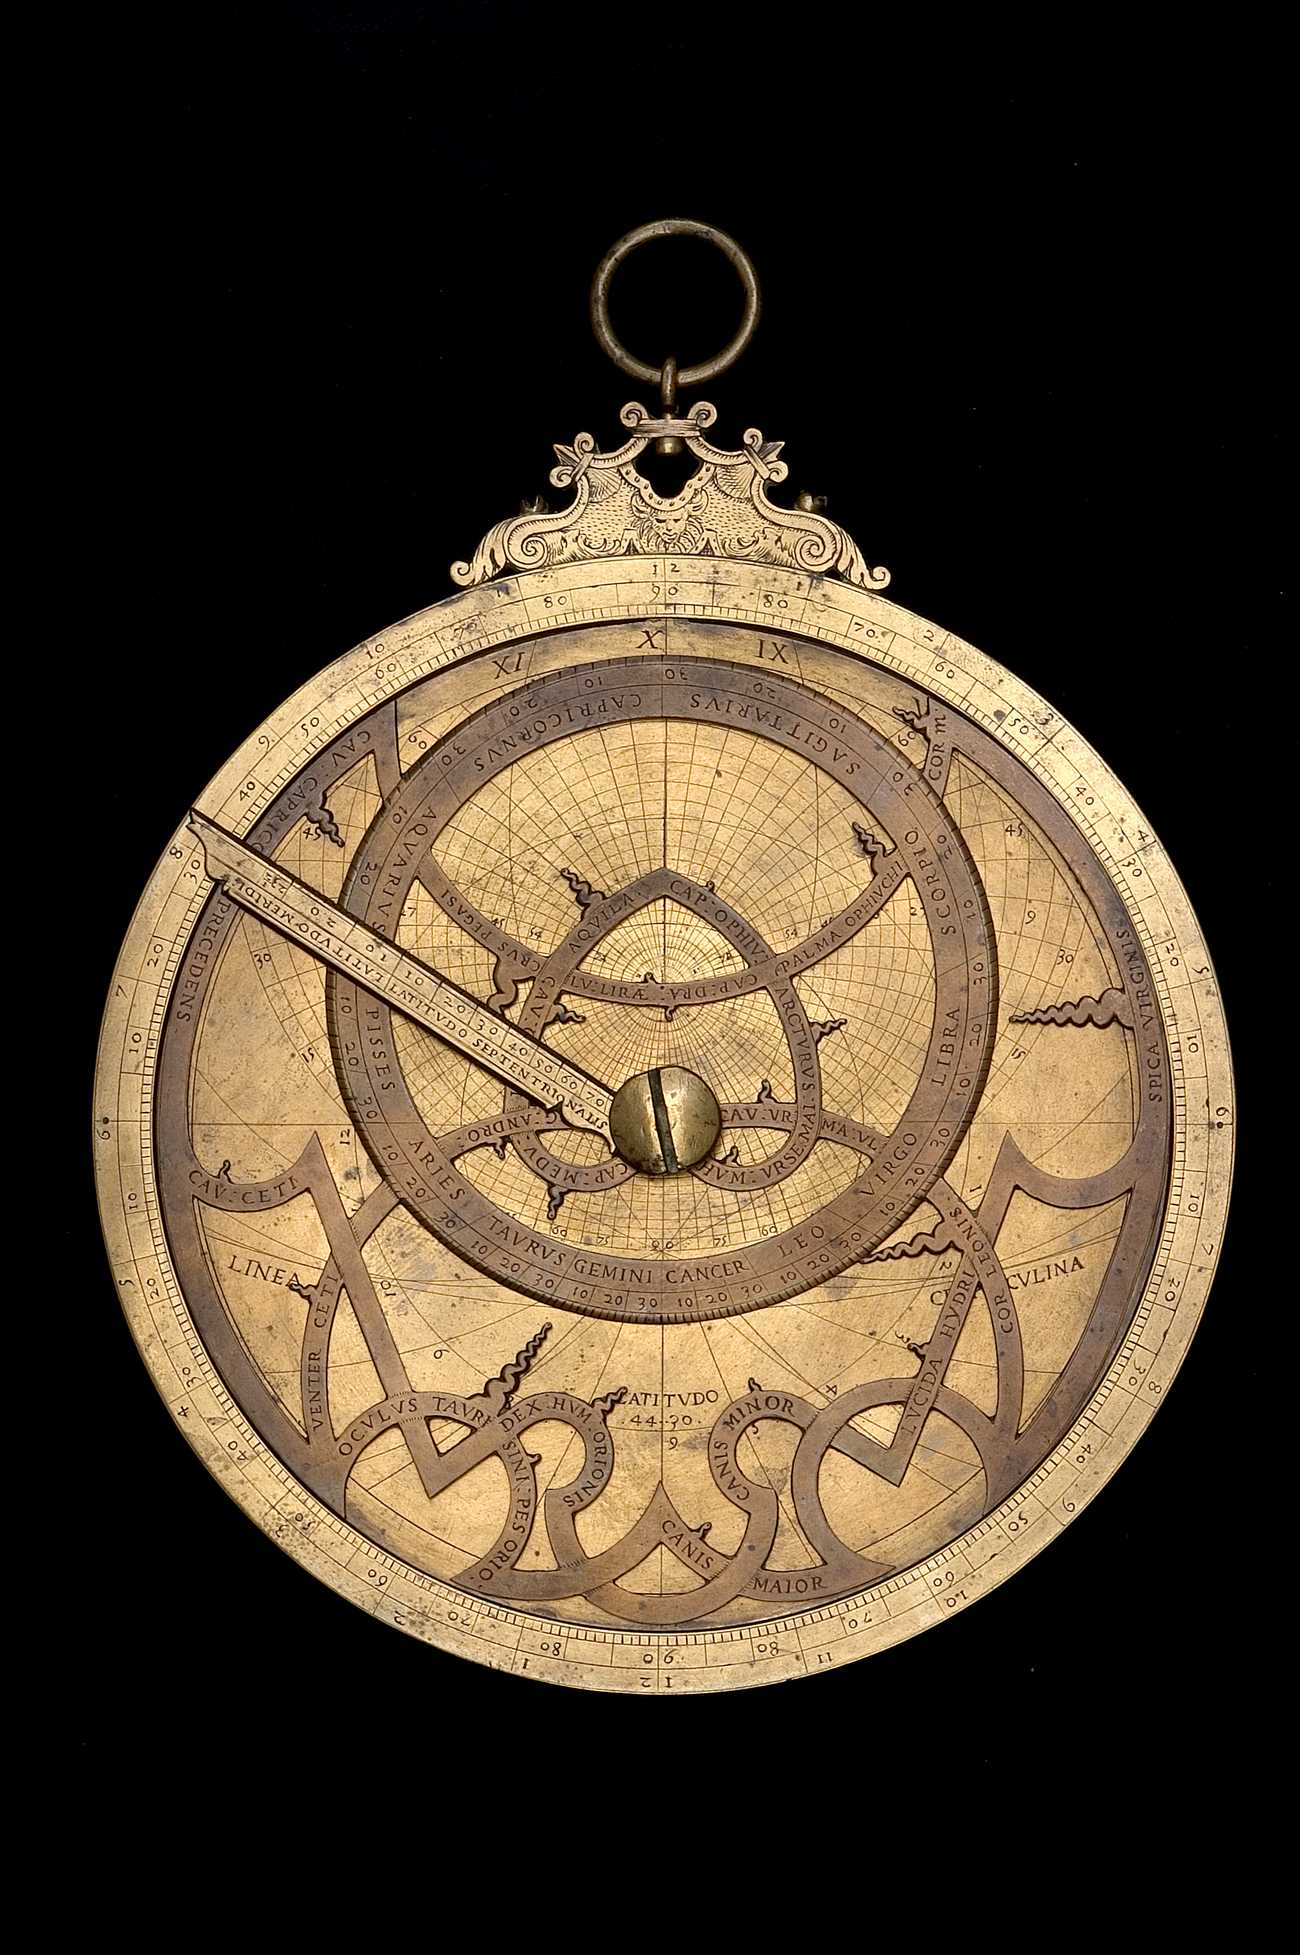 Astrolabe Image Report Inventory Number 52473: Astrolabe Report (inventory Number 50257